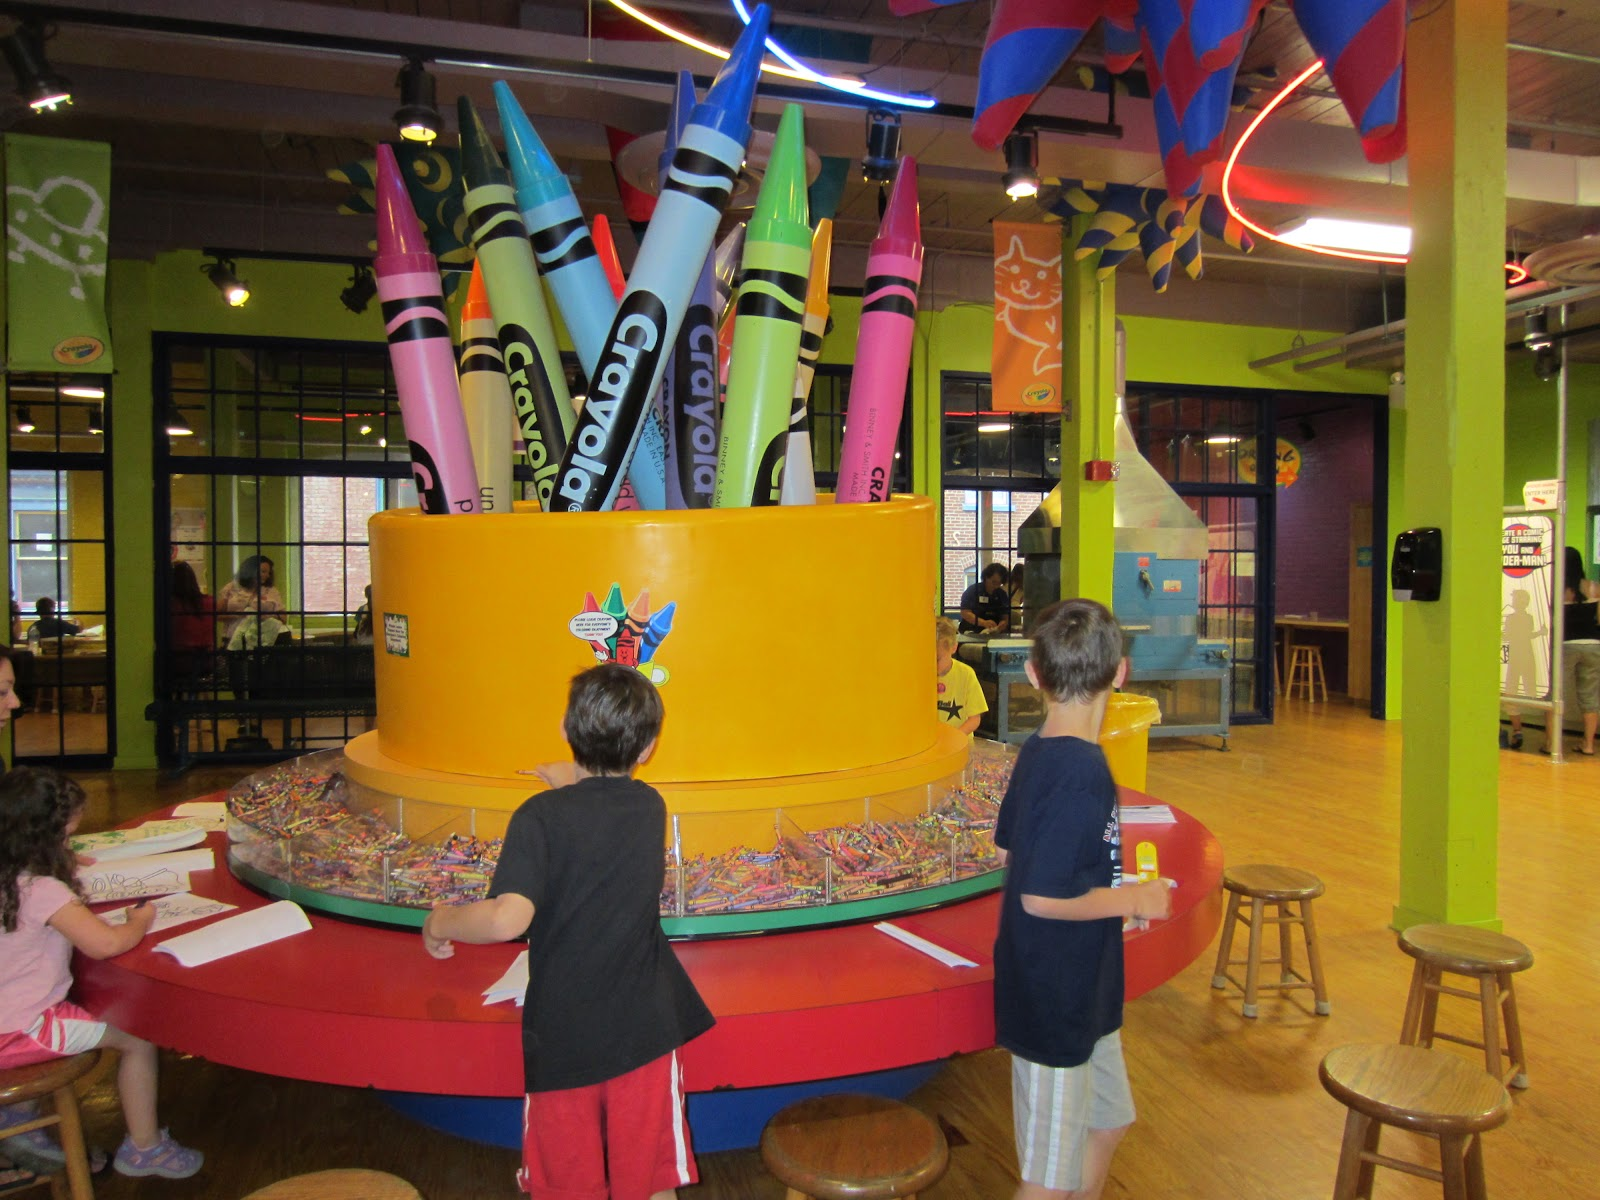 Crayons and activities at the Crayola Experience